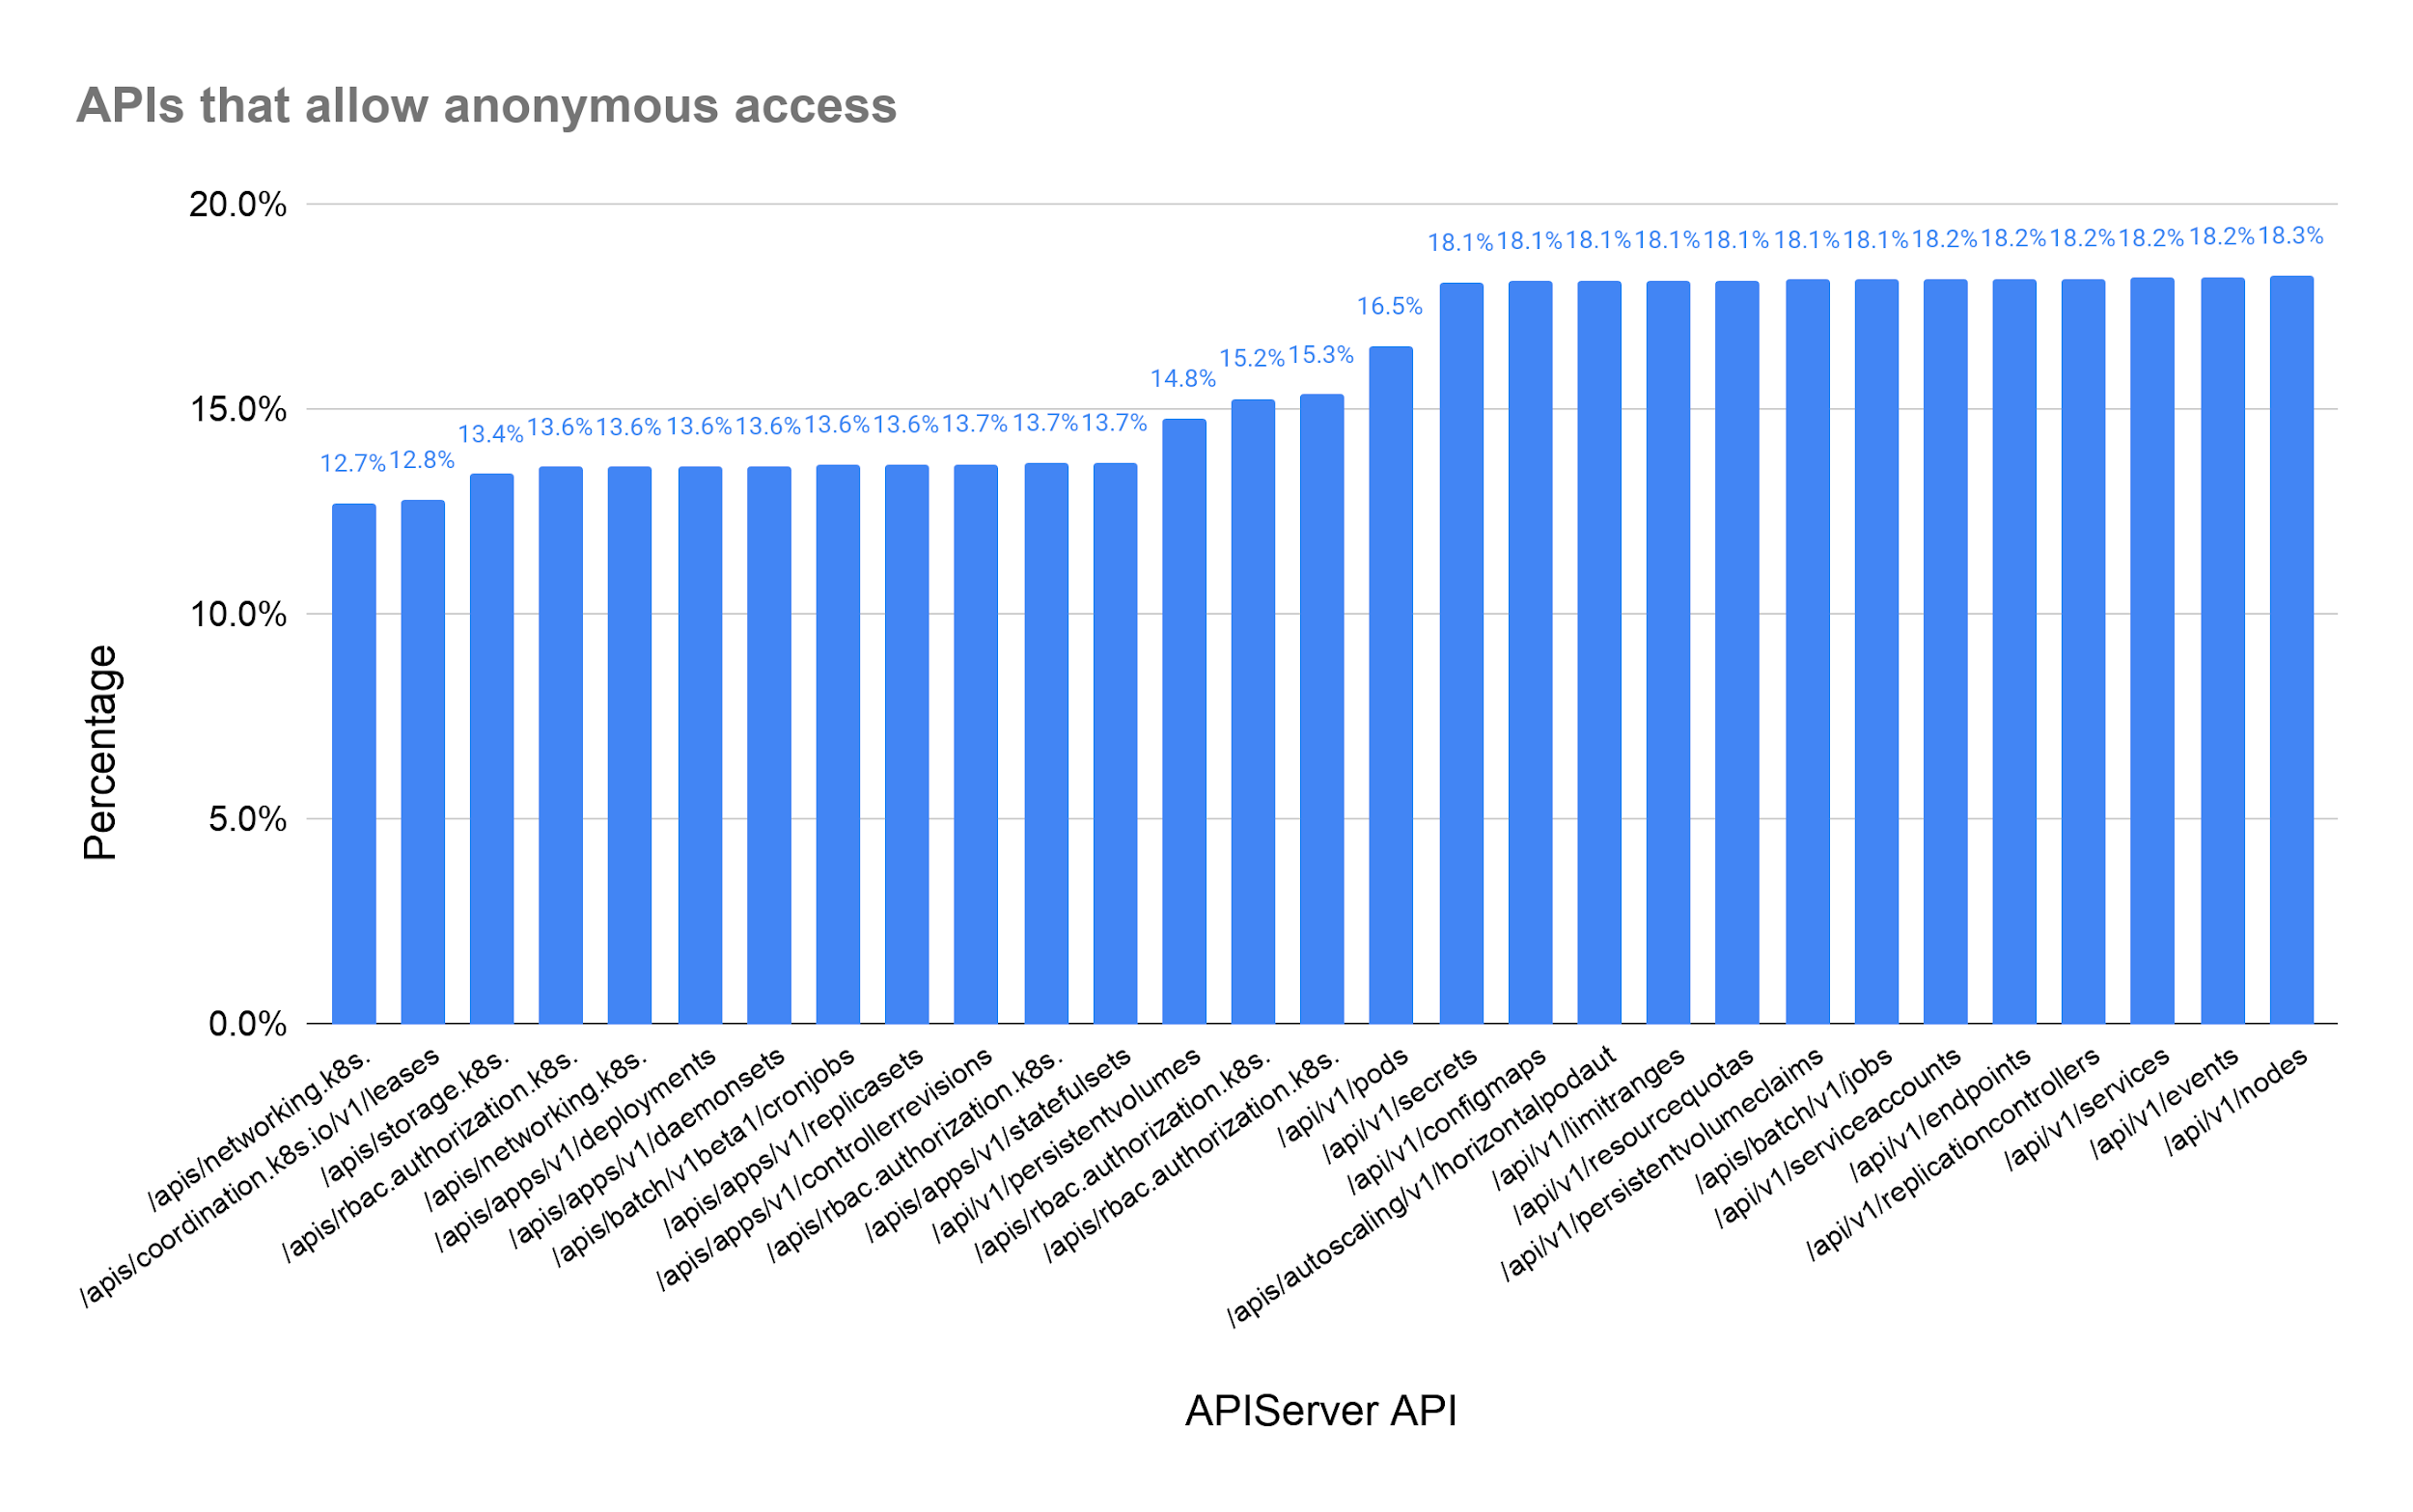 Figure 8. APIs that allow anonymous/unauthenticated access.